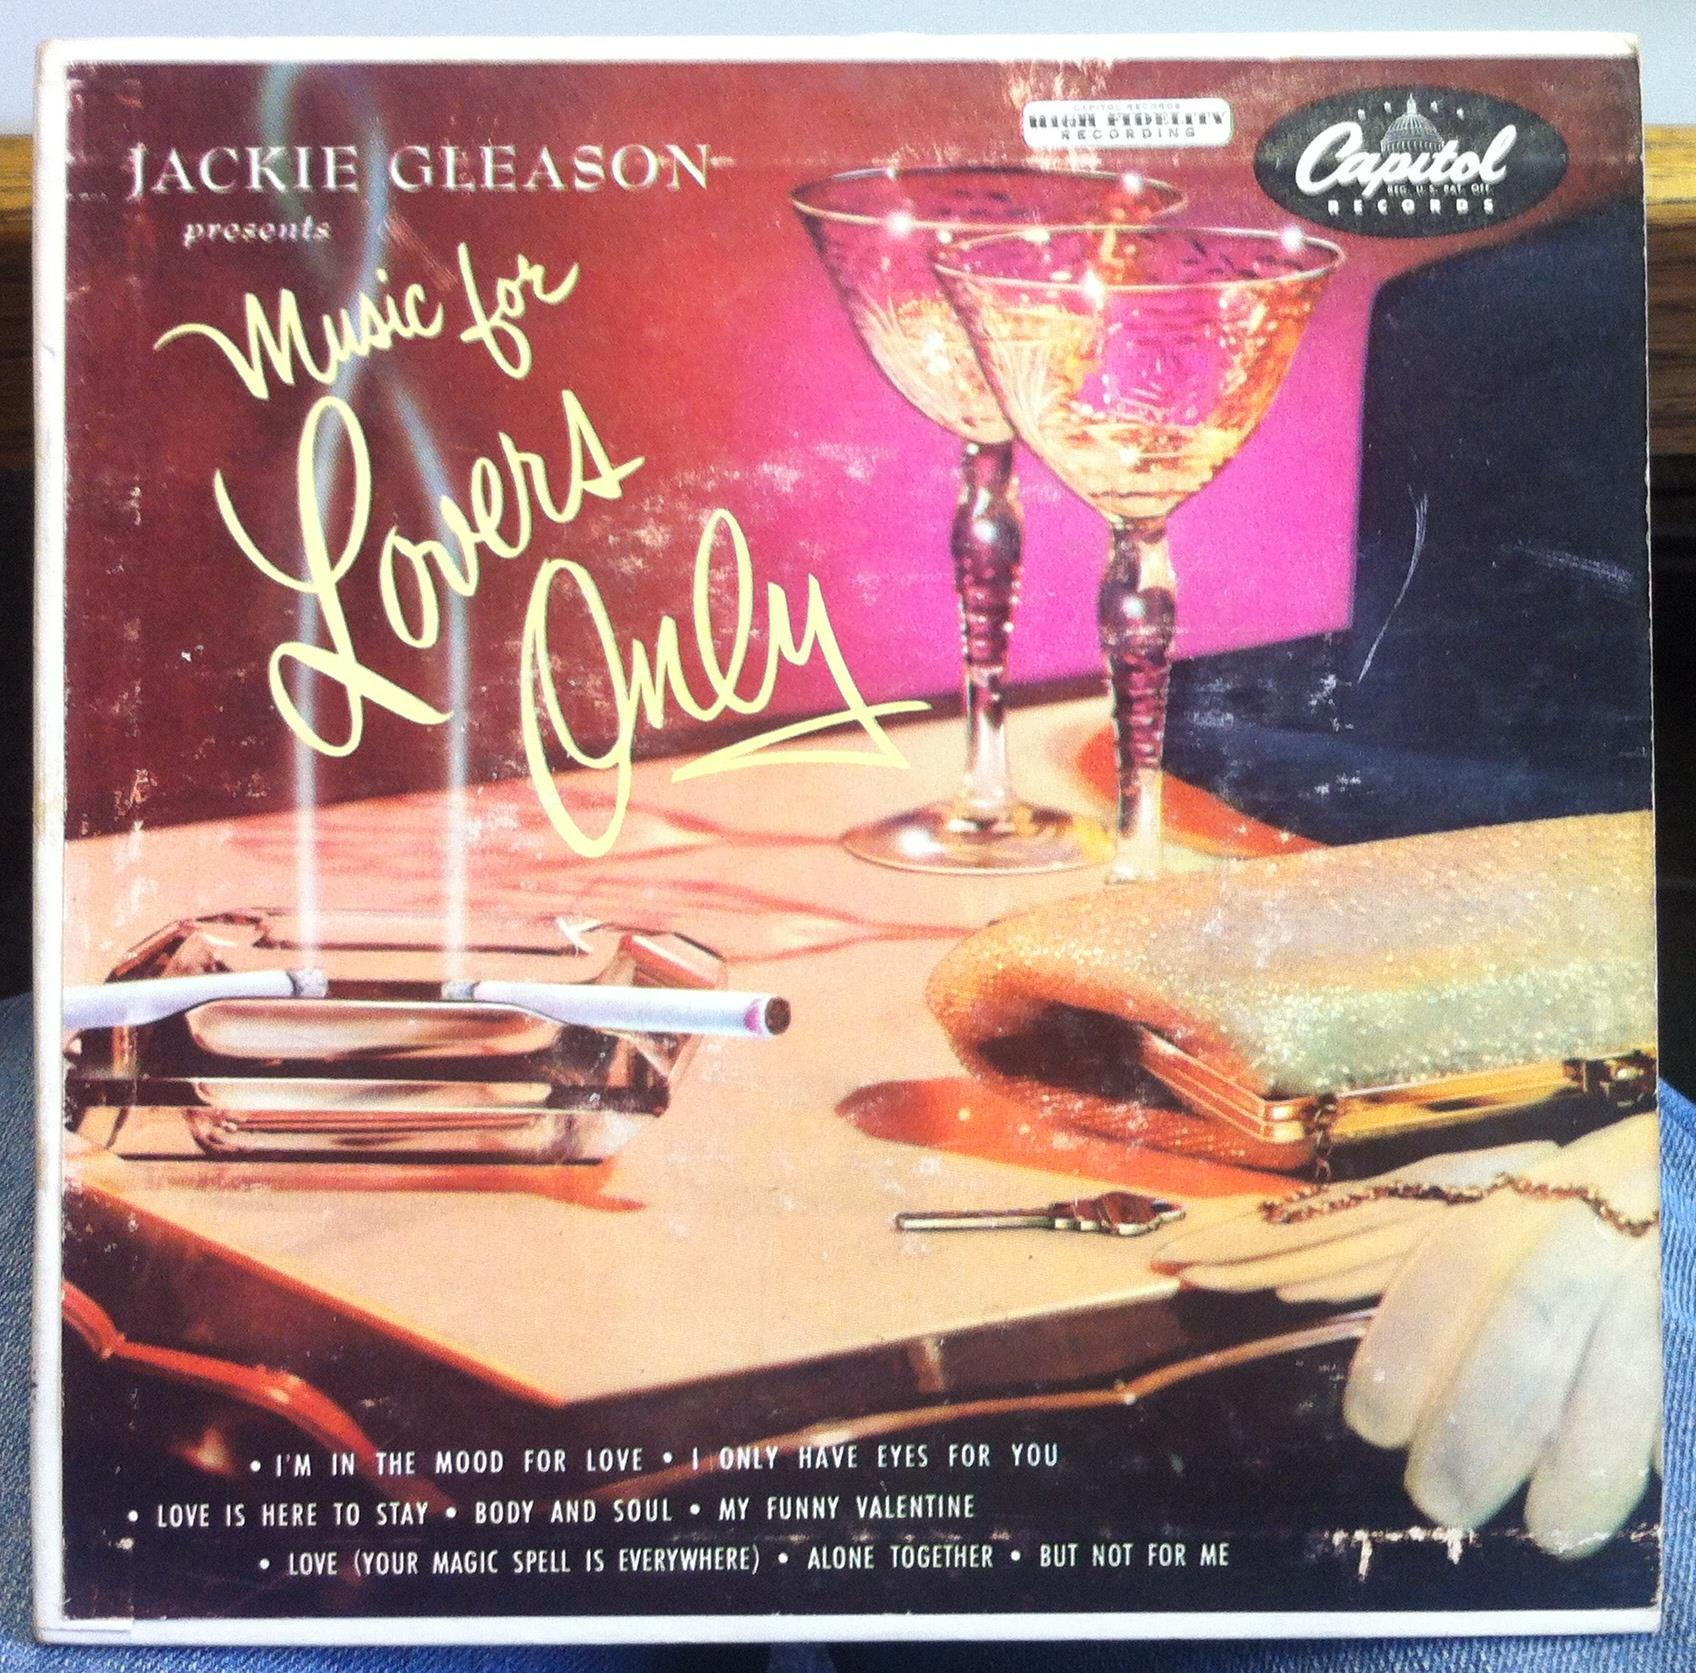 Jackie Gleason - I Only Have Eyes For You / I'm In The Mood For Love